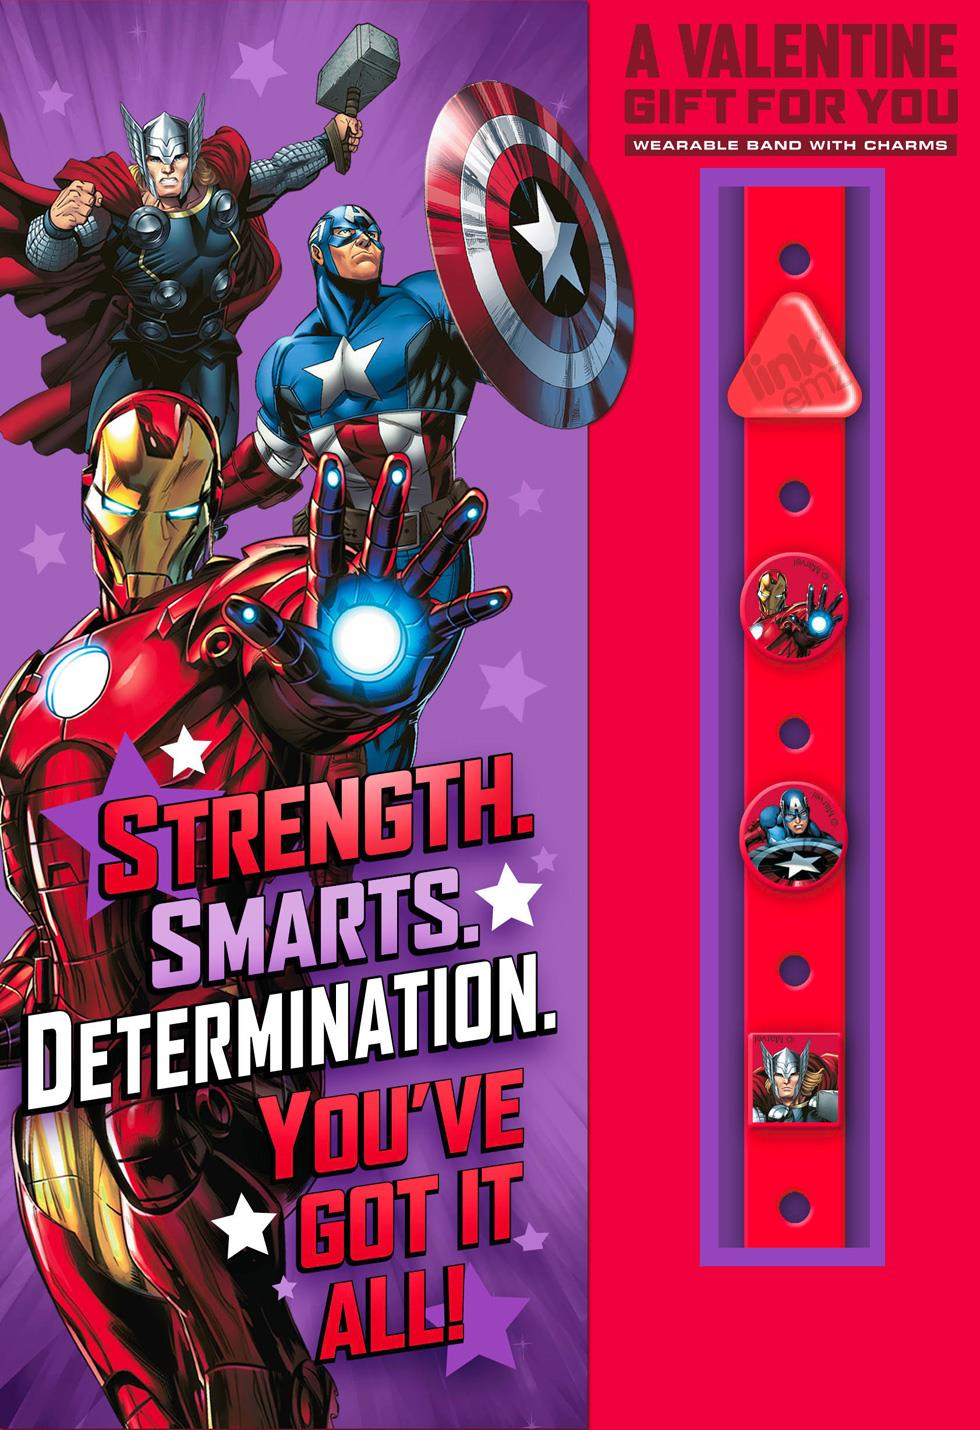 Marvel Avengers Valentine S Day Card With Link Emz